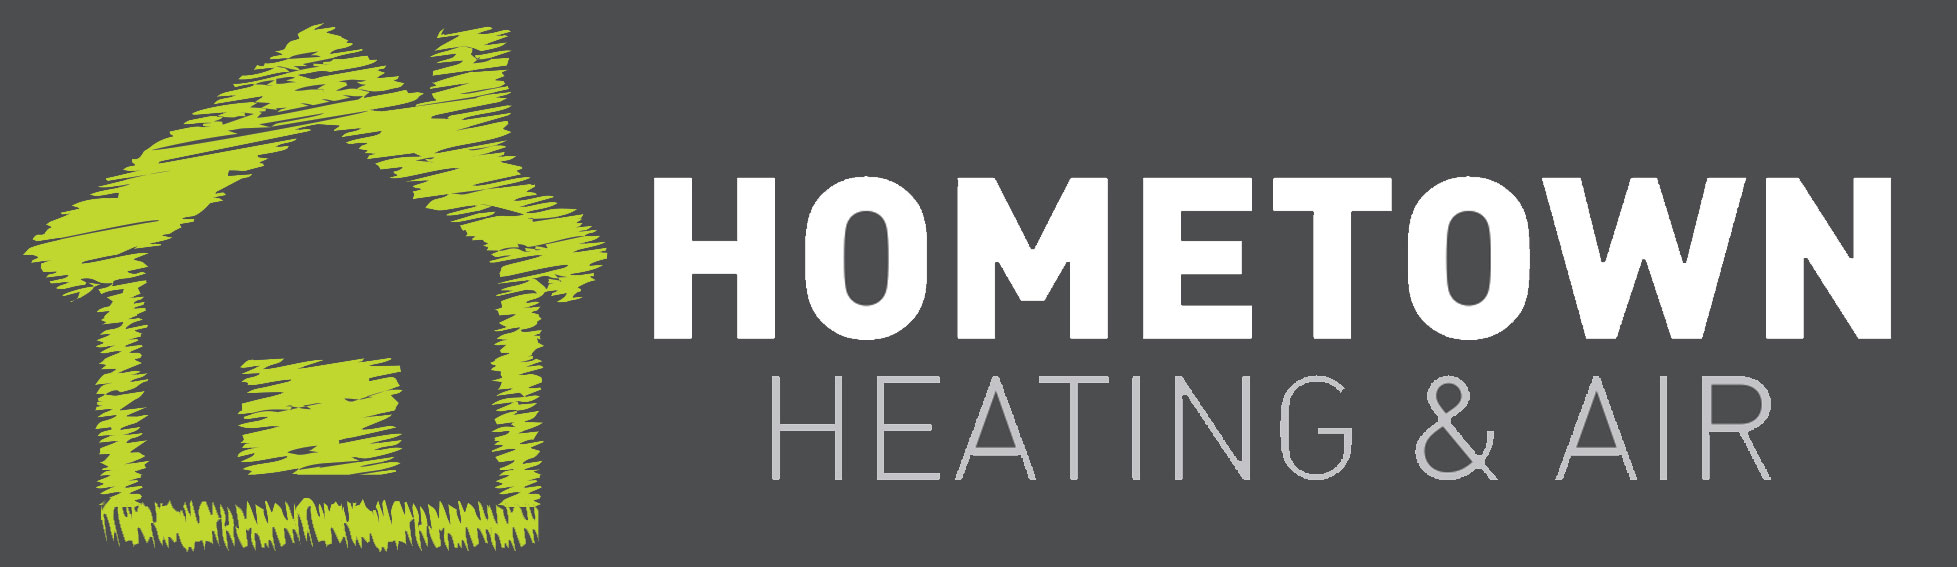 Hometown Heating & Air, Inc.